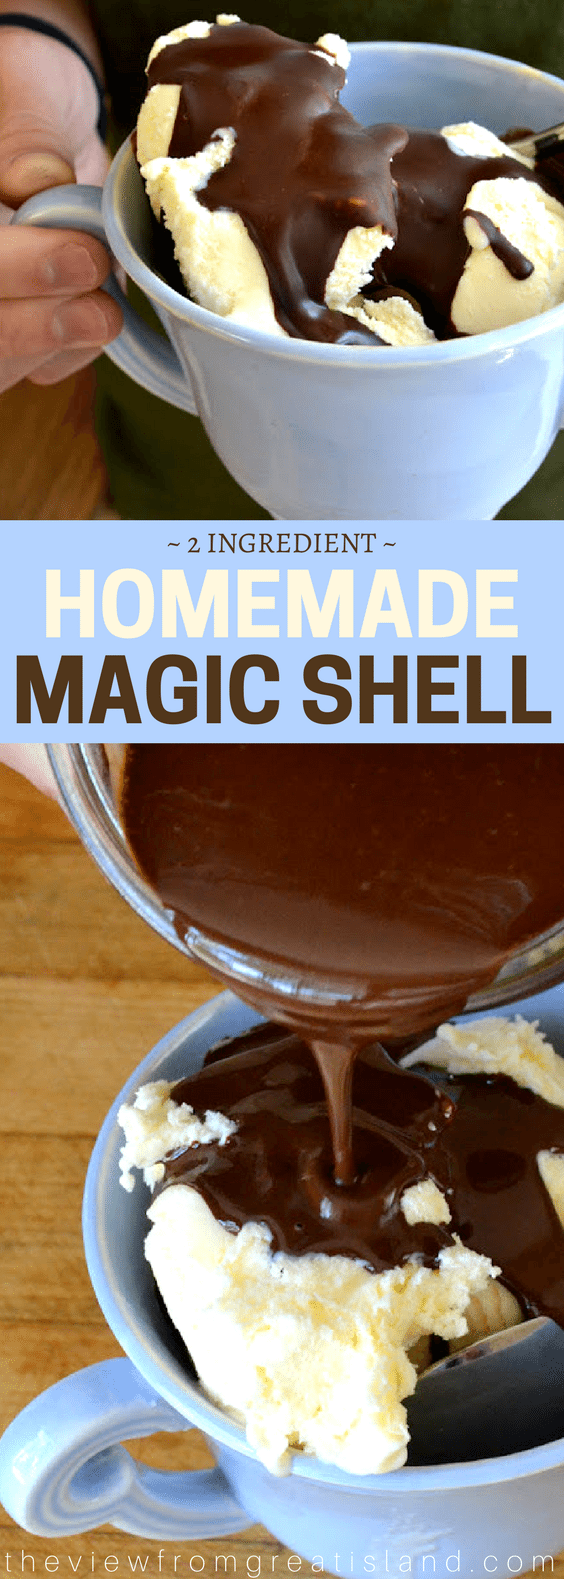 How to Make Homemade Magic Shell ~ this easy sauce will transform any ice cream in your freezer into the most magical dessert ever! #magicshell #icecream #diy #chocolate #icecreamtopping #dessert #sundae #chocolatesauce